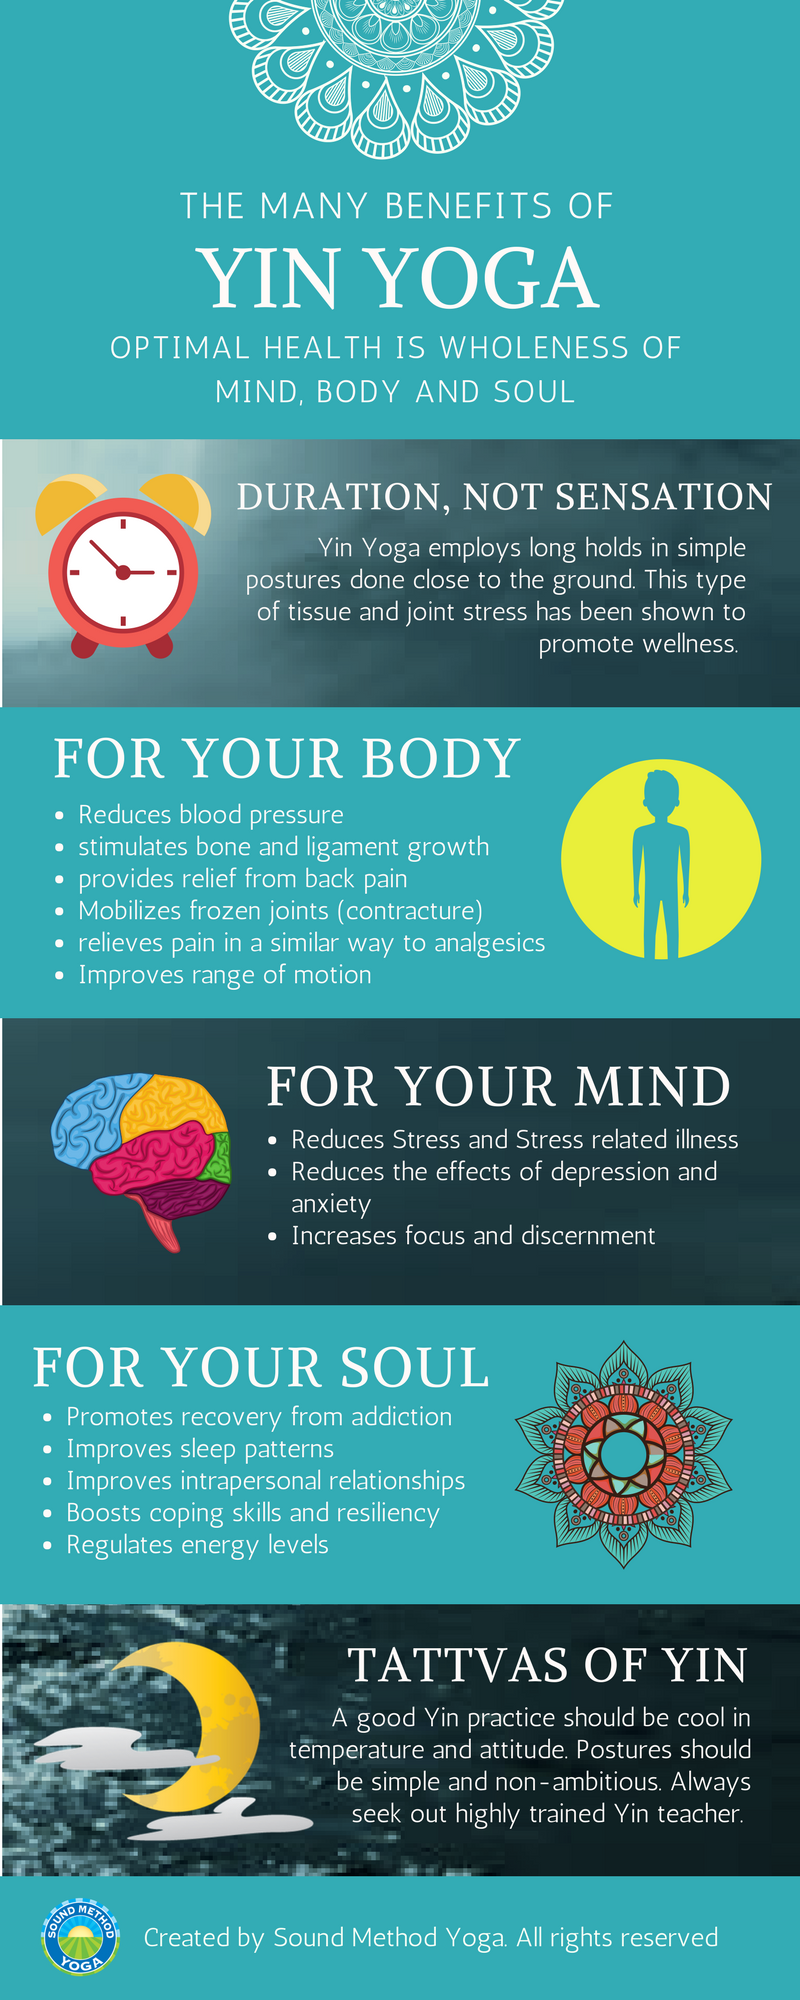 Benefits of Yin Yoga Infographic